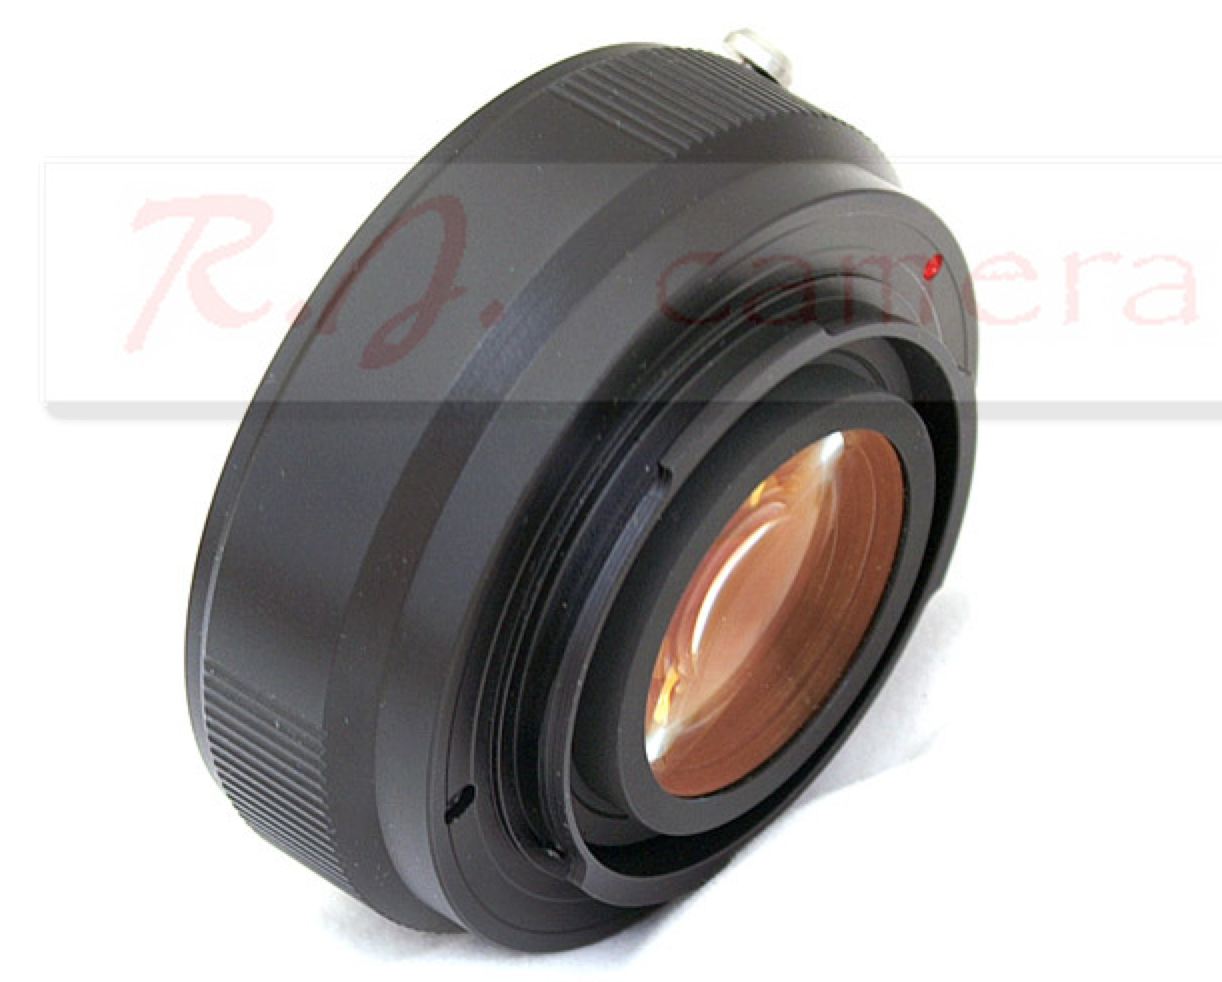 NEX Speed Booster'ish Focal Reducer Adapter